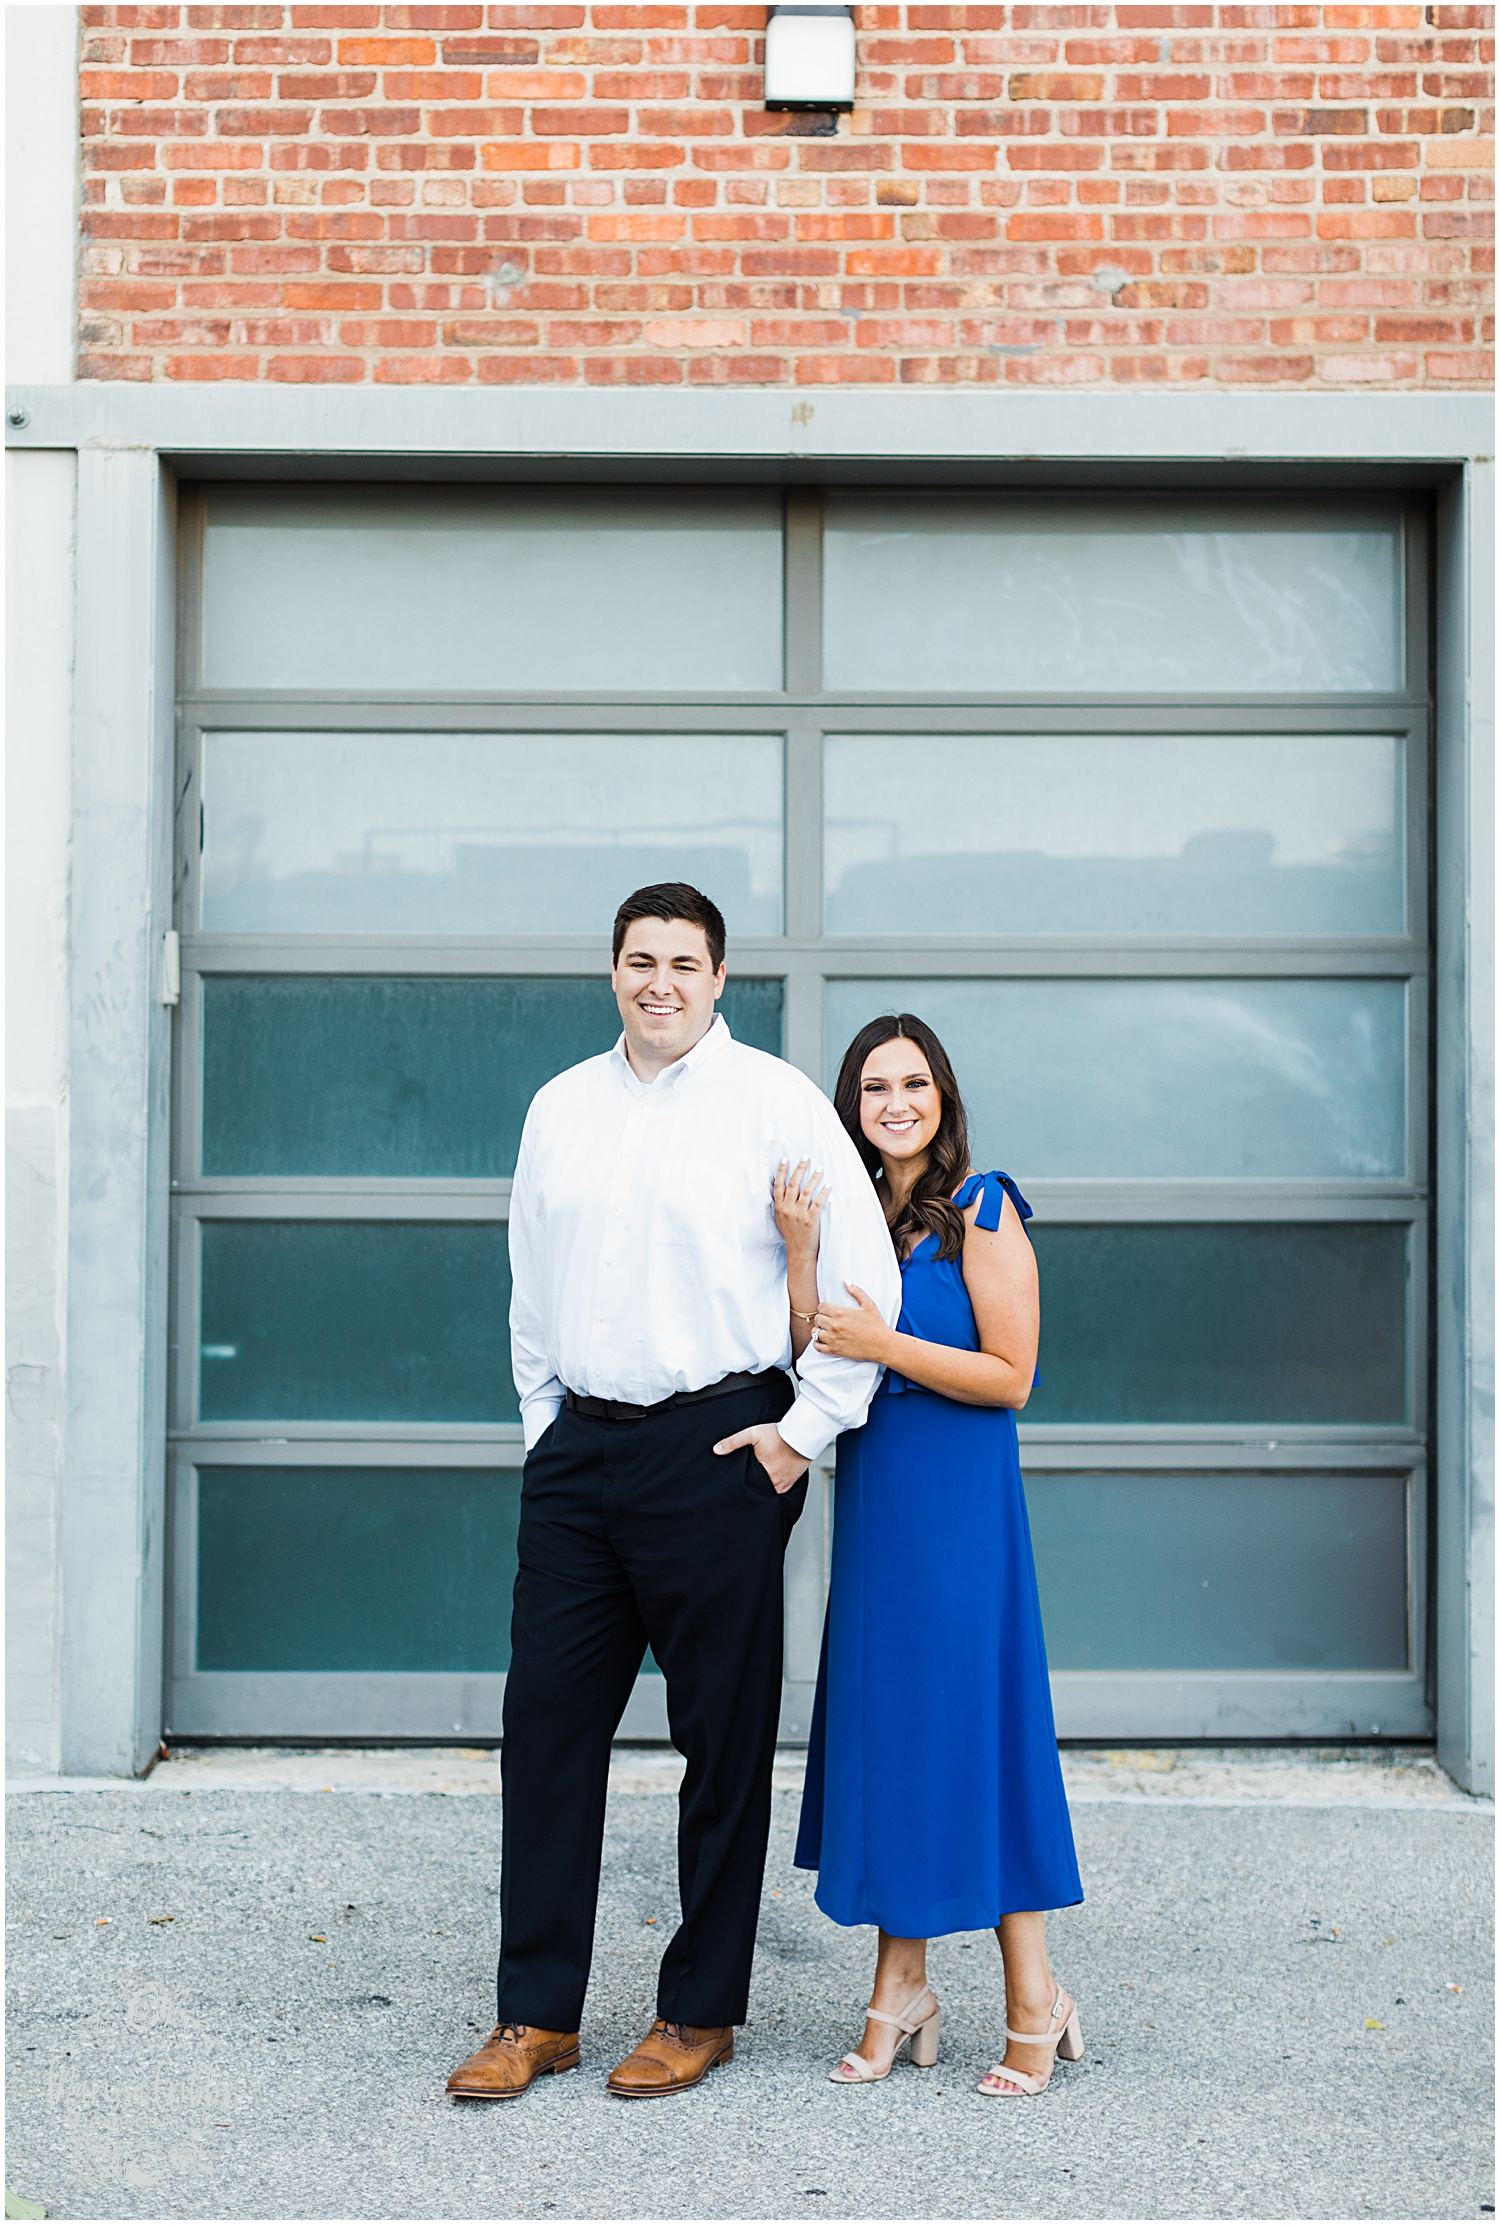 MORGAN & KEVIN ENGAGEMENT BLOG | MARISSA CRIBBS PHOTOGRAPHY_8282.jpg